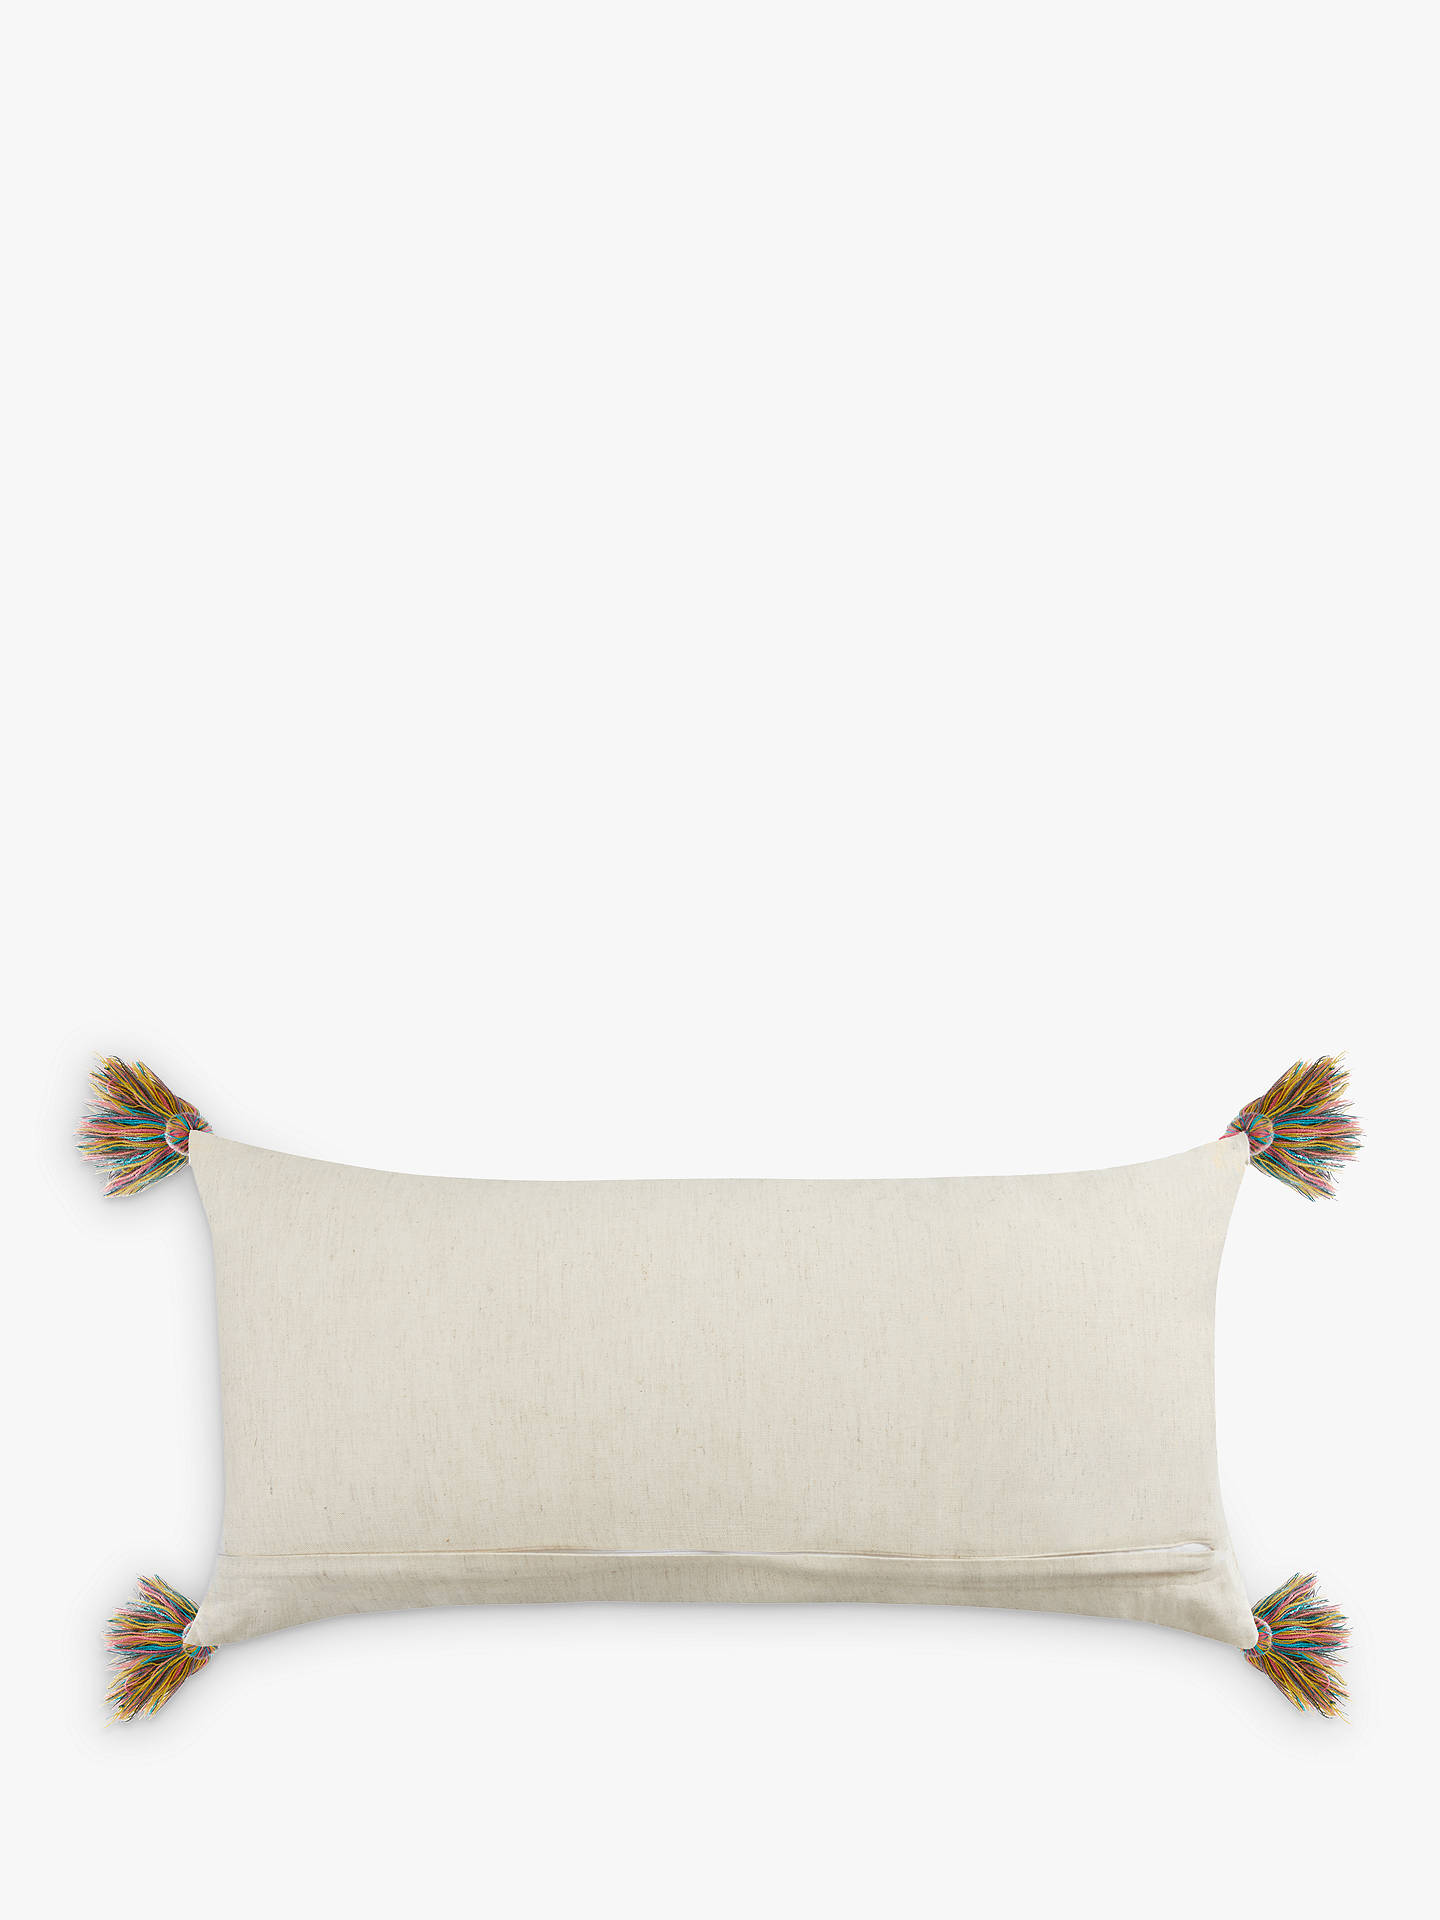 BuyJohn Lewis & Partners Fusion Geo Embroidery Cushion, Multi Online at johnlewis.com